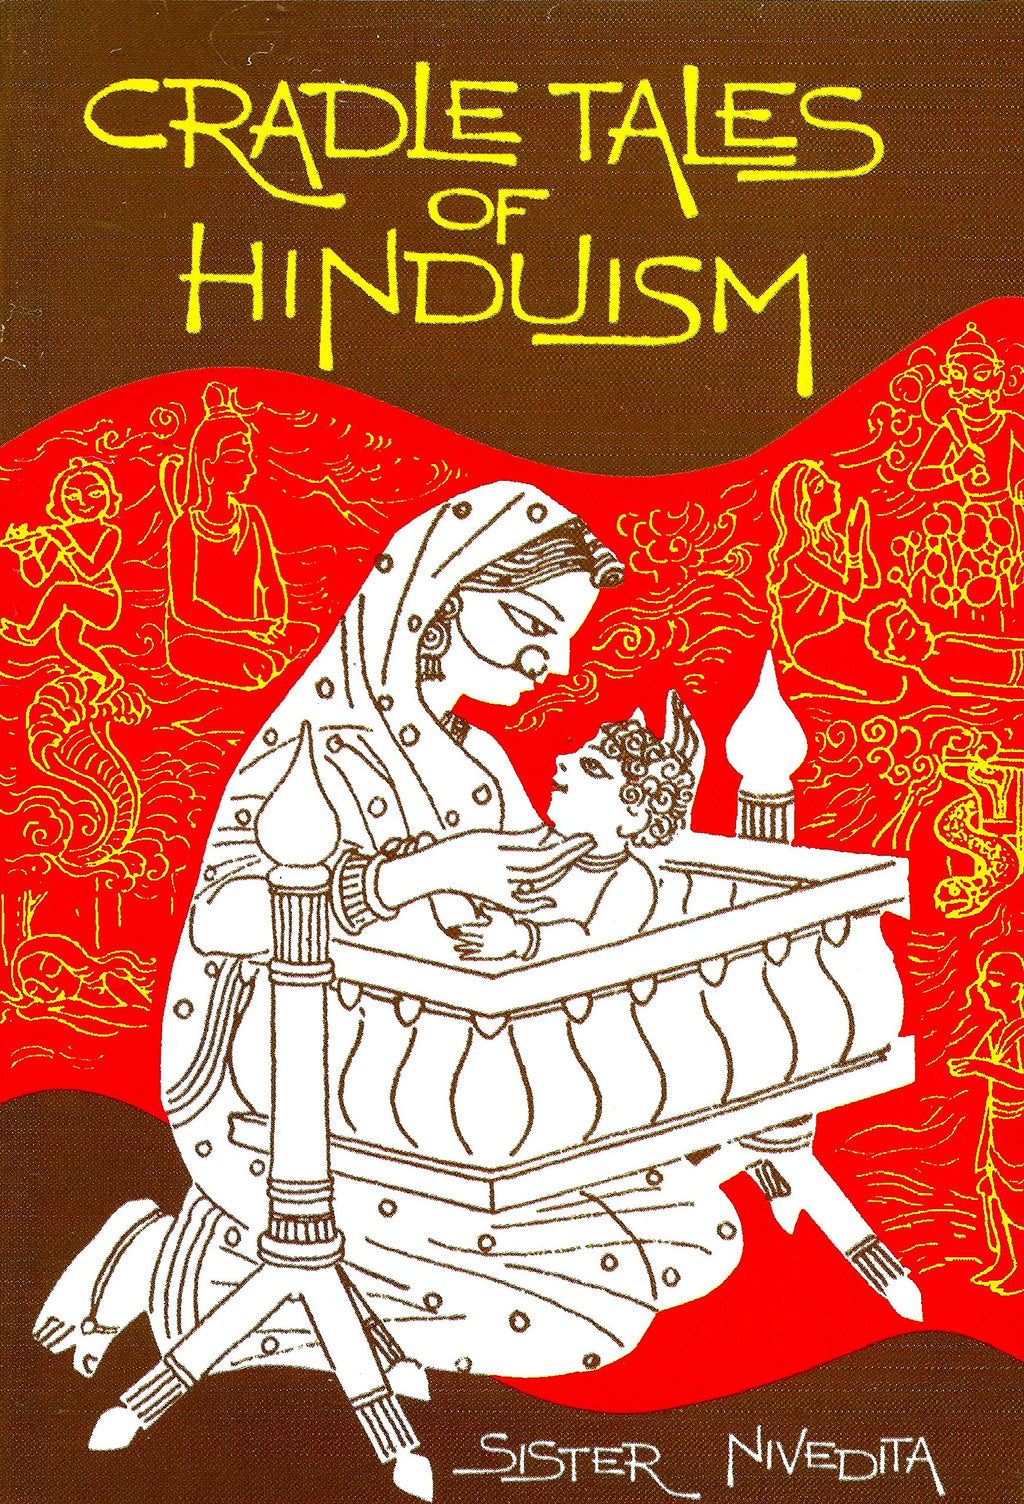 Cradle Tales of Hinduism by Sister Nivedita